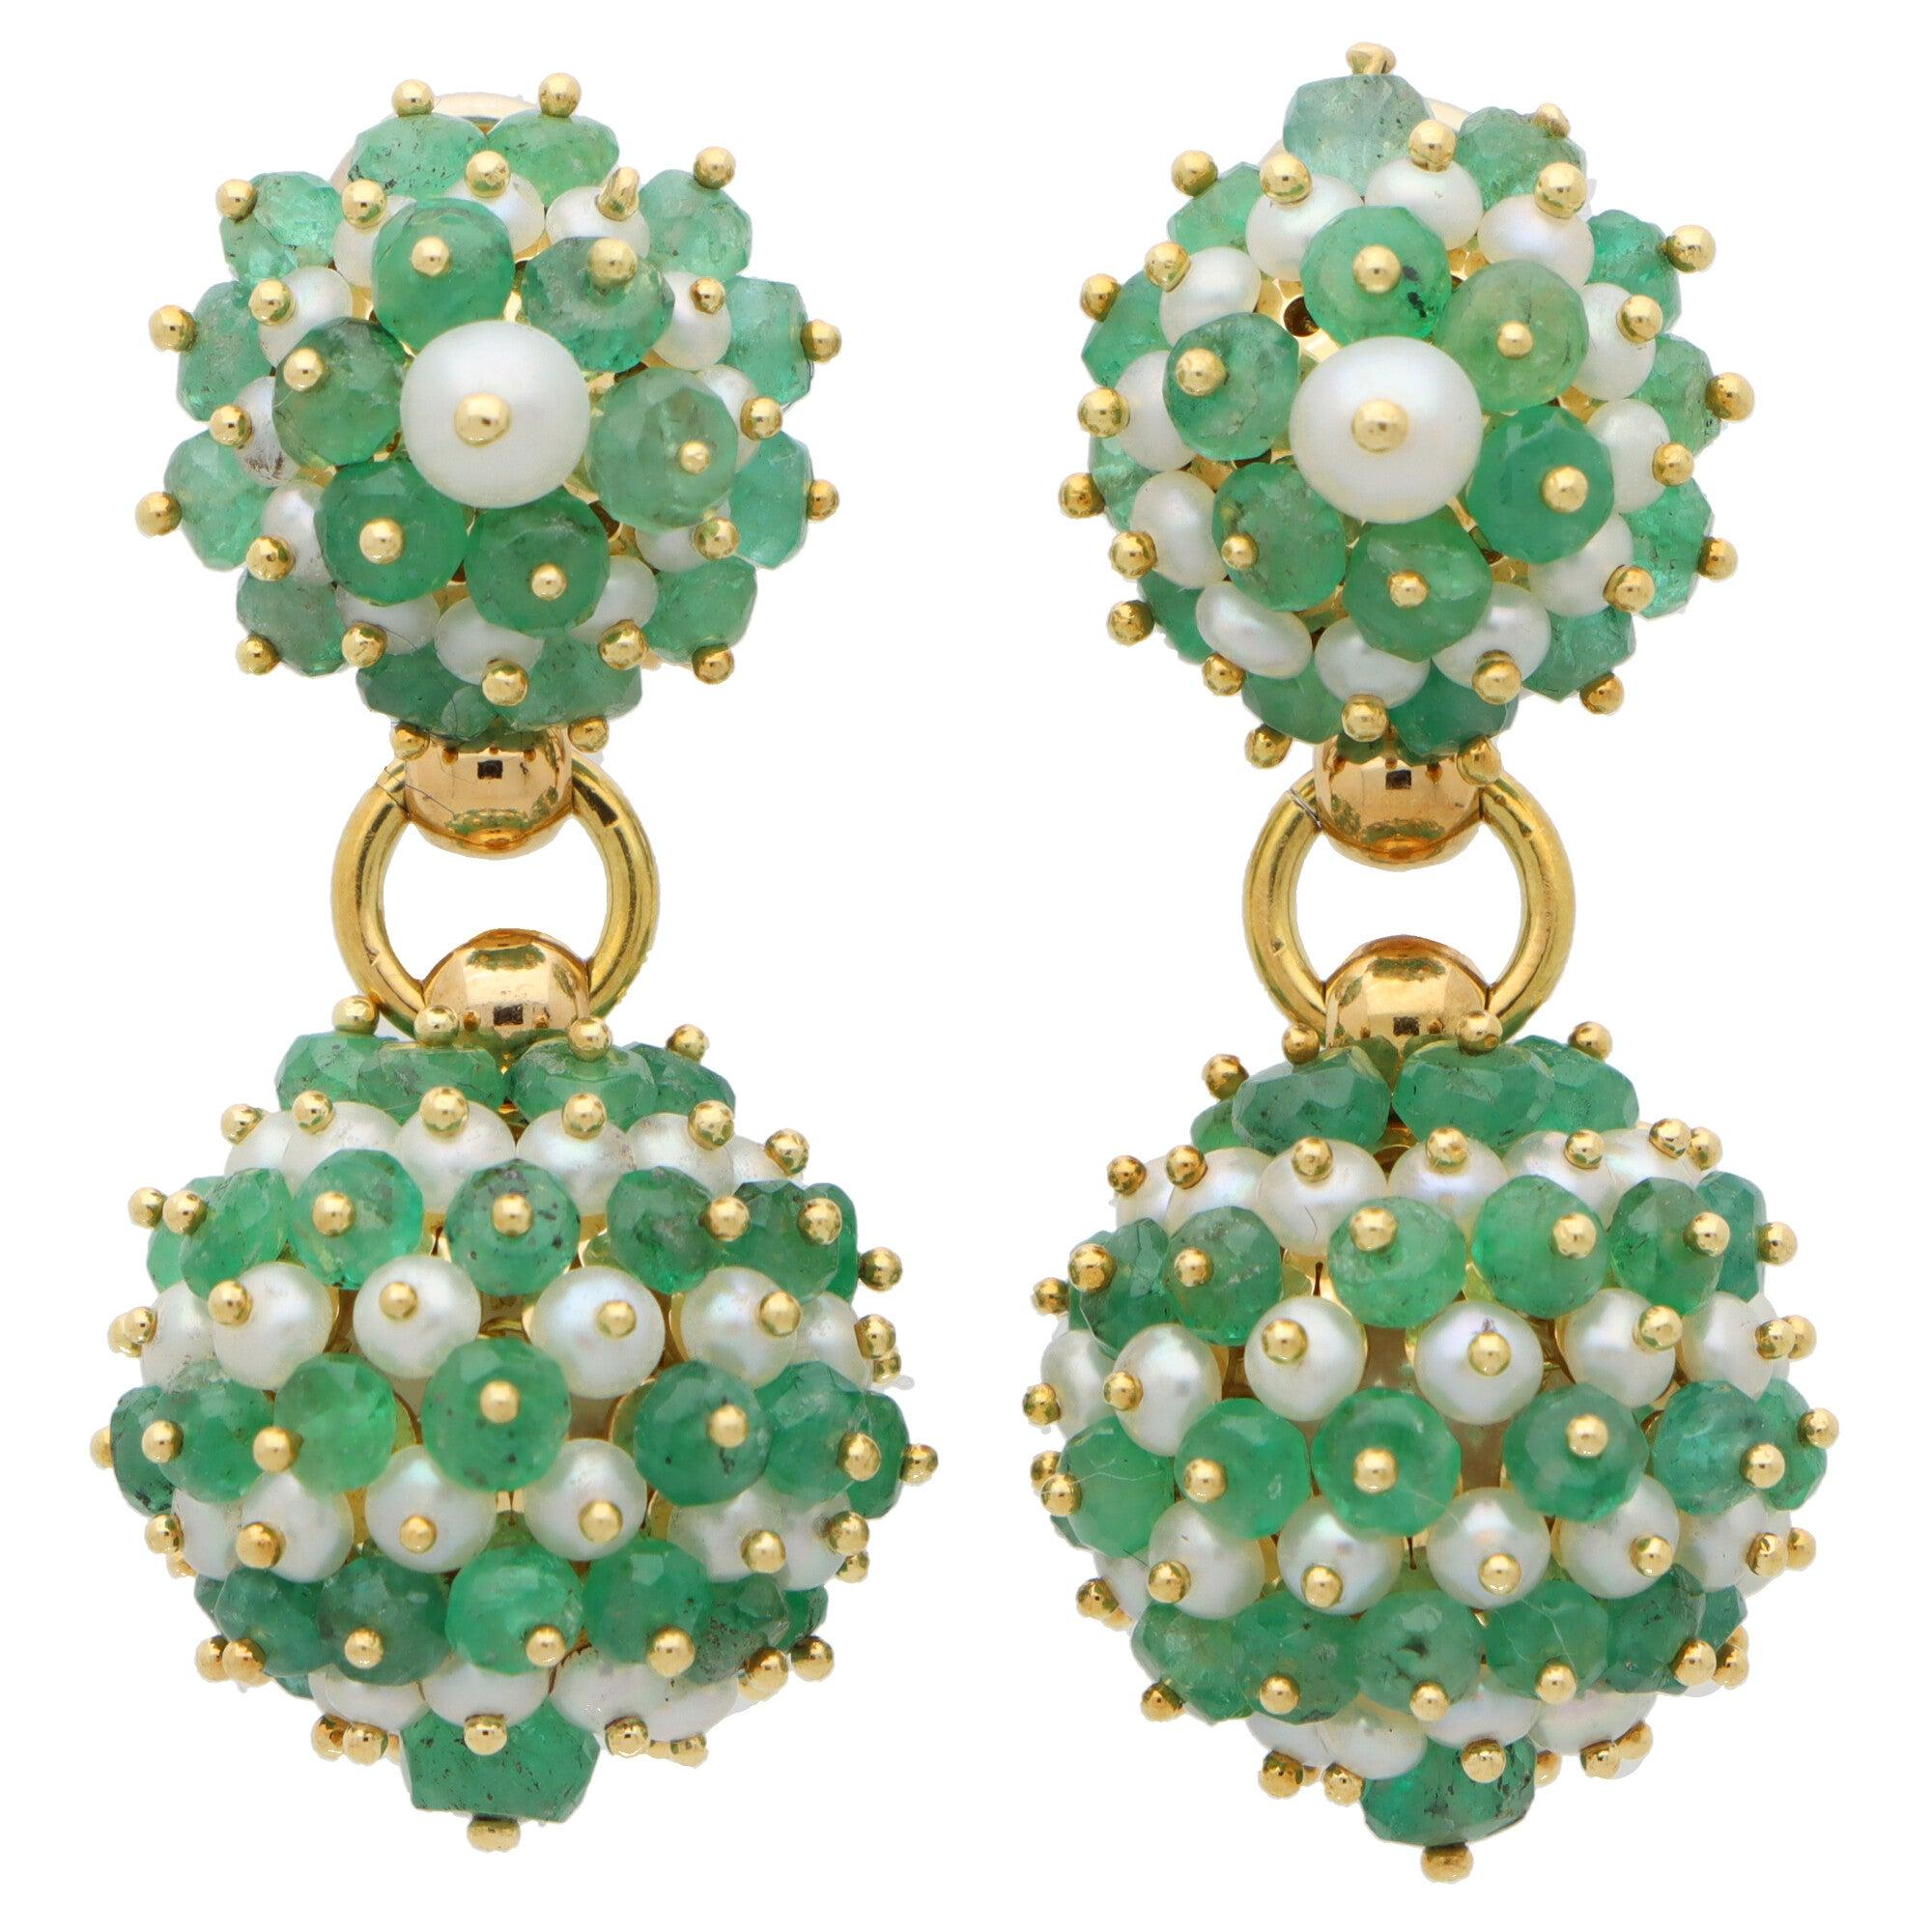 Vintage Emerald and Pearl Drop Ball Earrings Set in 18k Yellow Gold